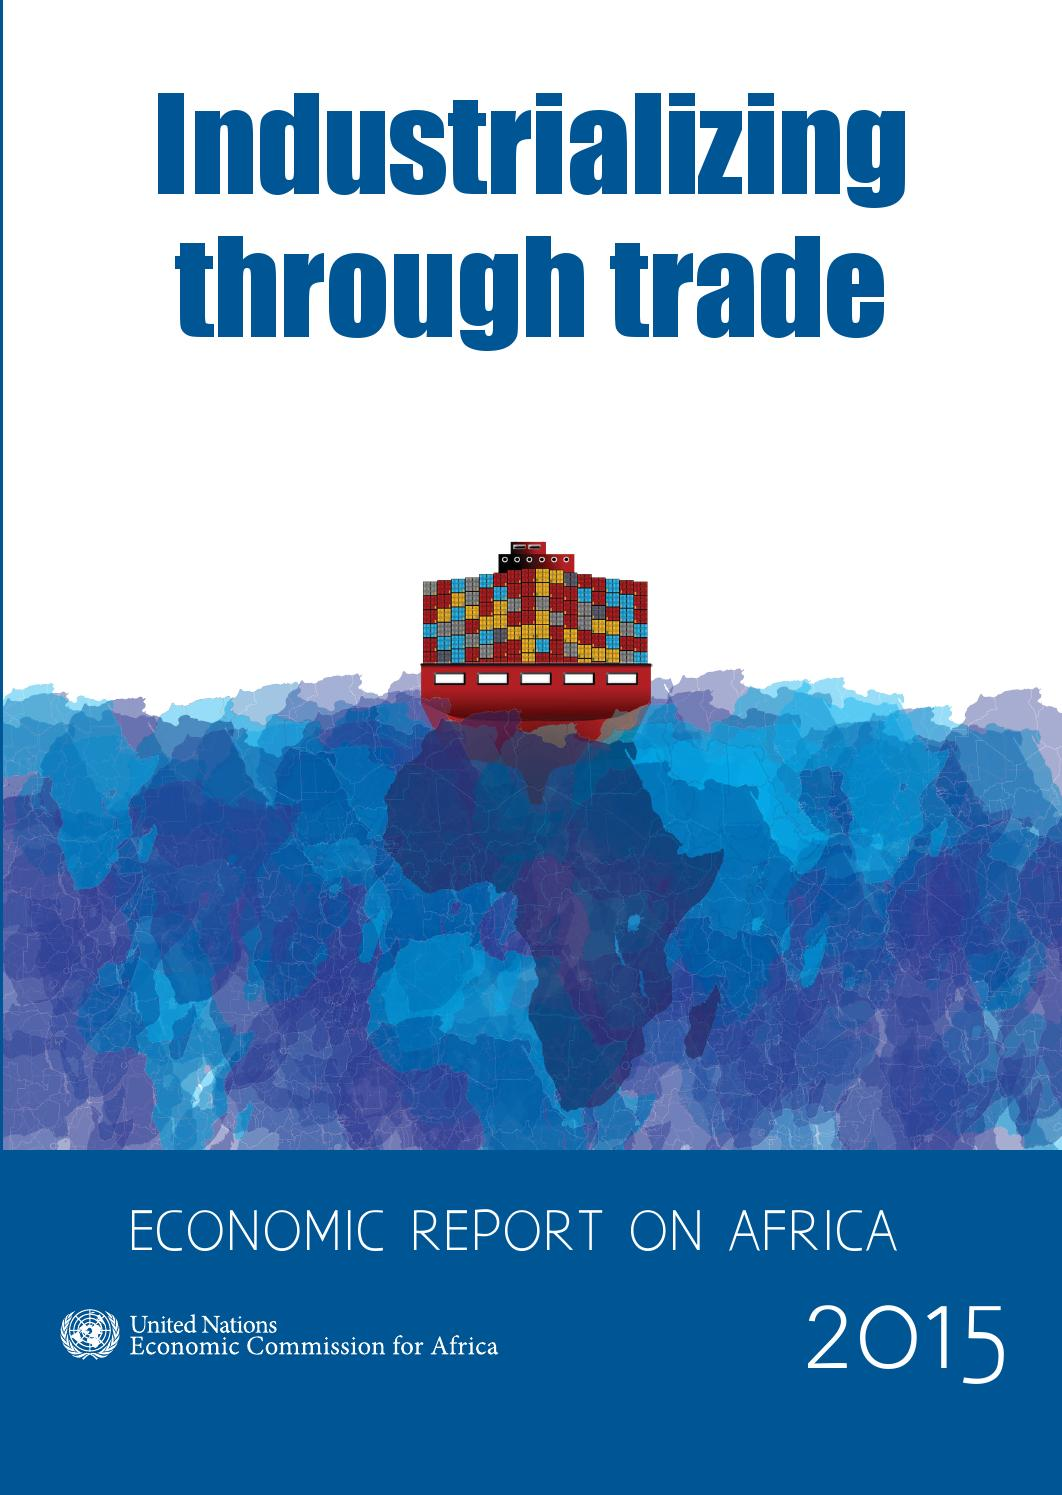 Economic Report on Africa 2015 by United Nations